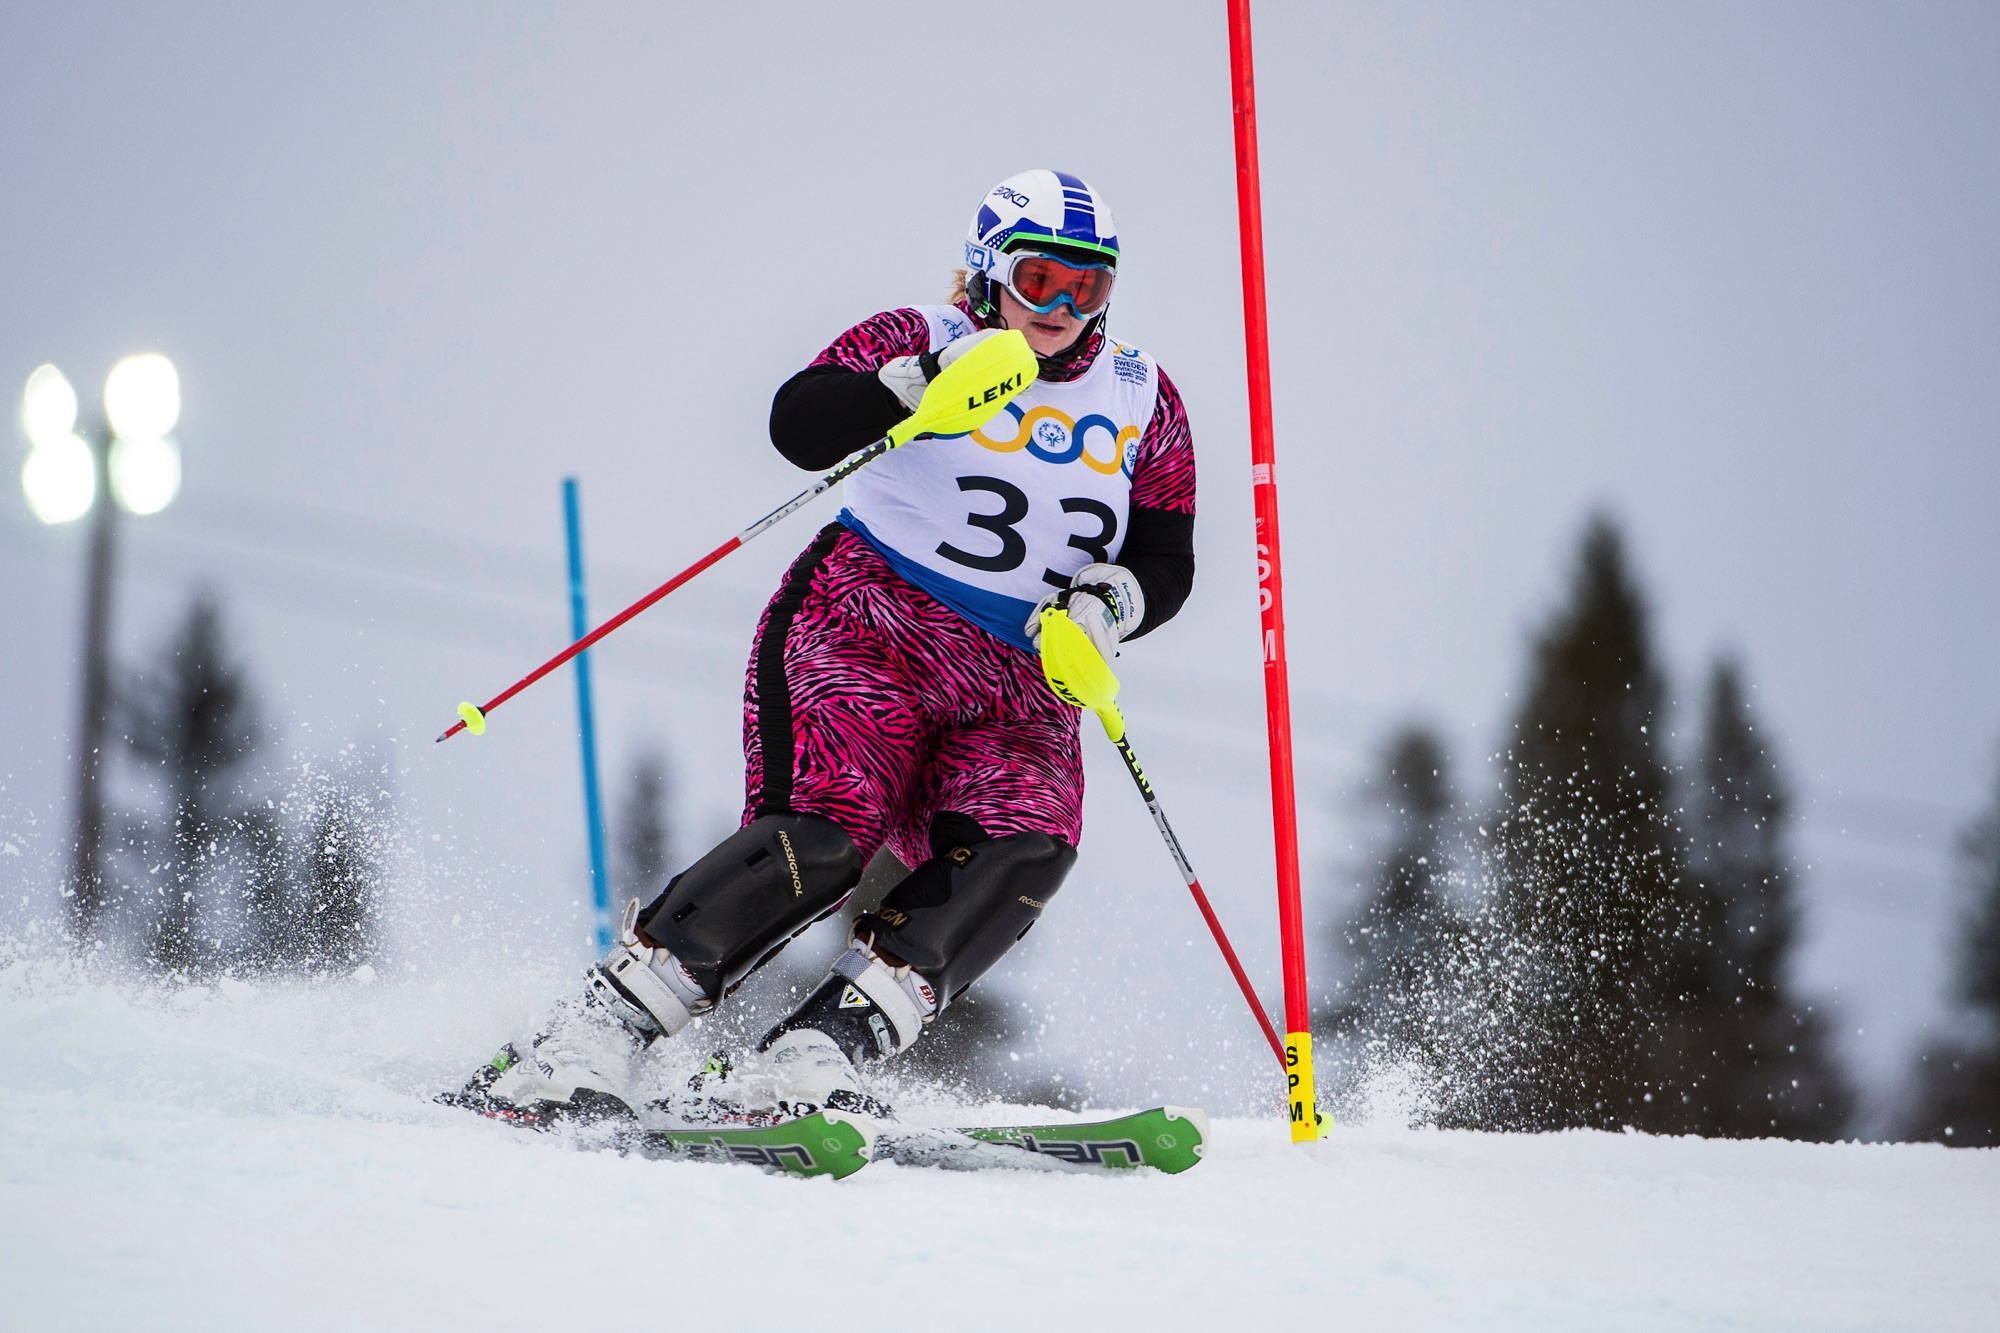 'Pink Panther' Hagberg forges an identity of her own after supreme slalom display